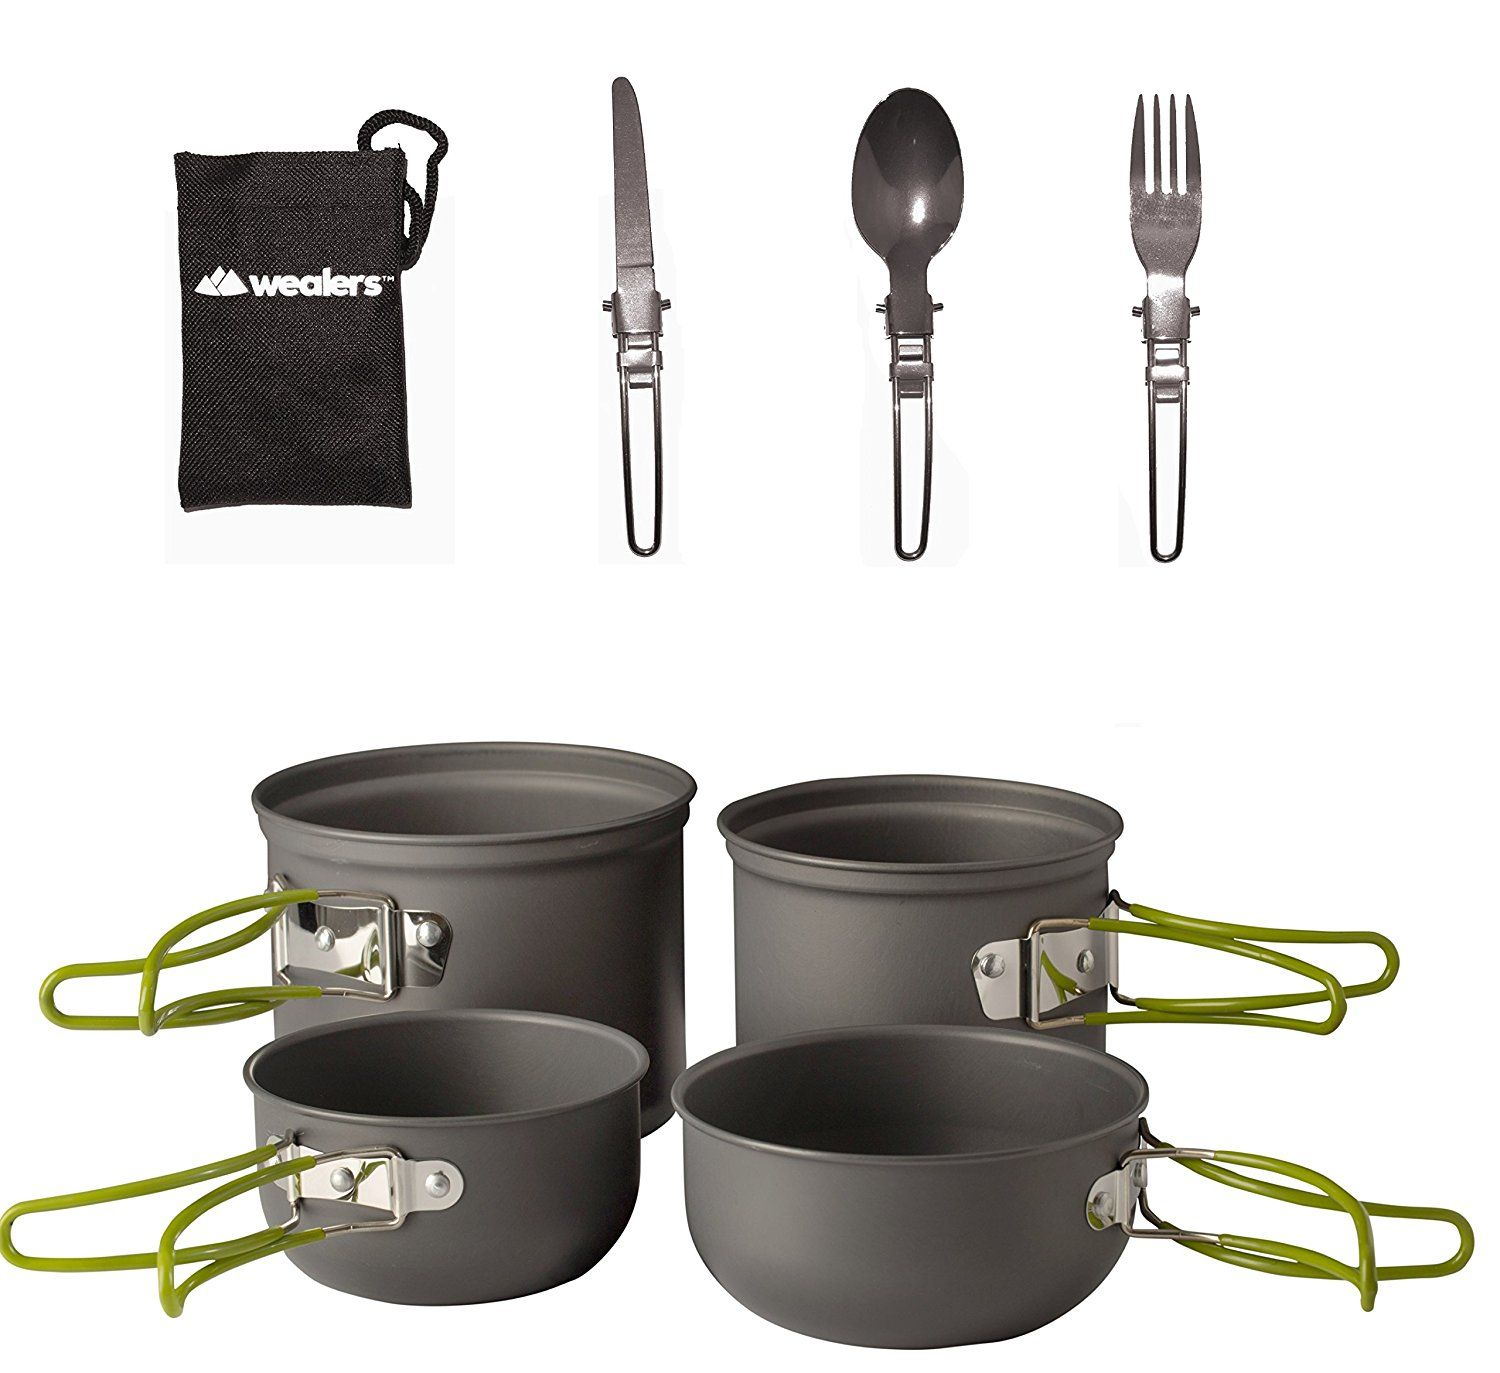 Handles That Stay in Position Camping Cookware Survival Oxford Drawstring Carrying Bag Mess Kit Non Melting Silicone Handles New Generation Anodized Non Stick Aluminum Pots-13 Piece Cookware Set